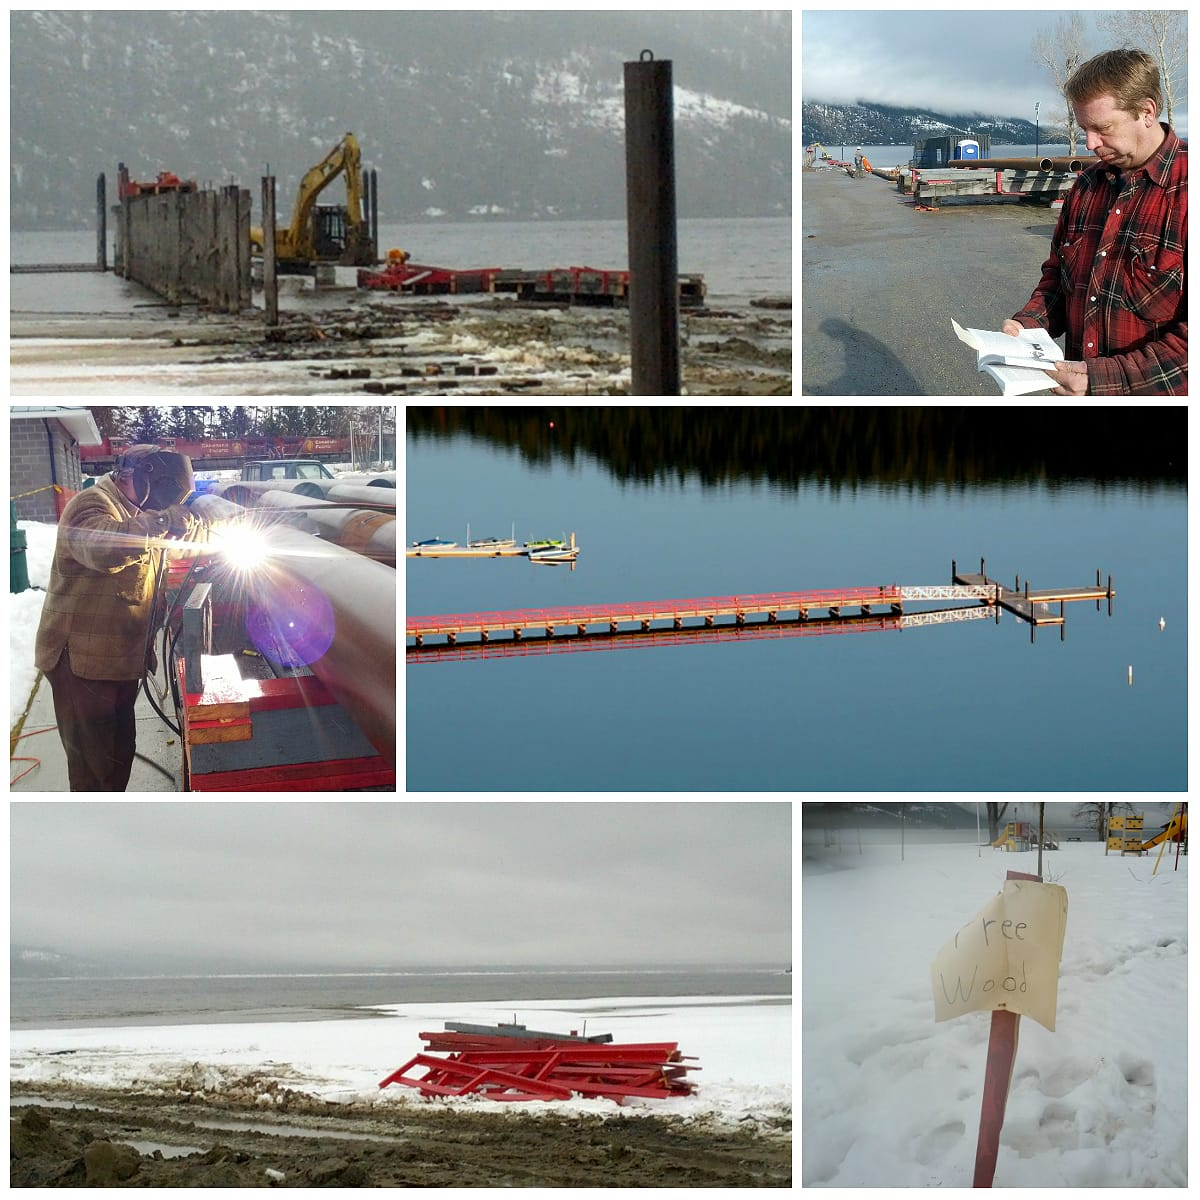 wharf collage1.jpg